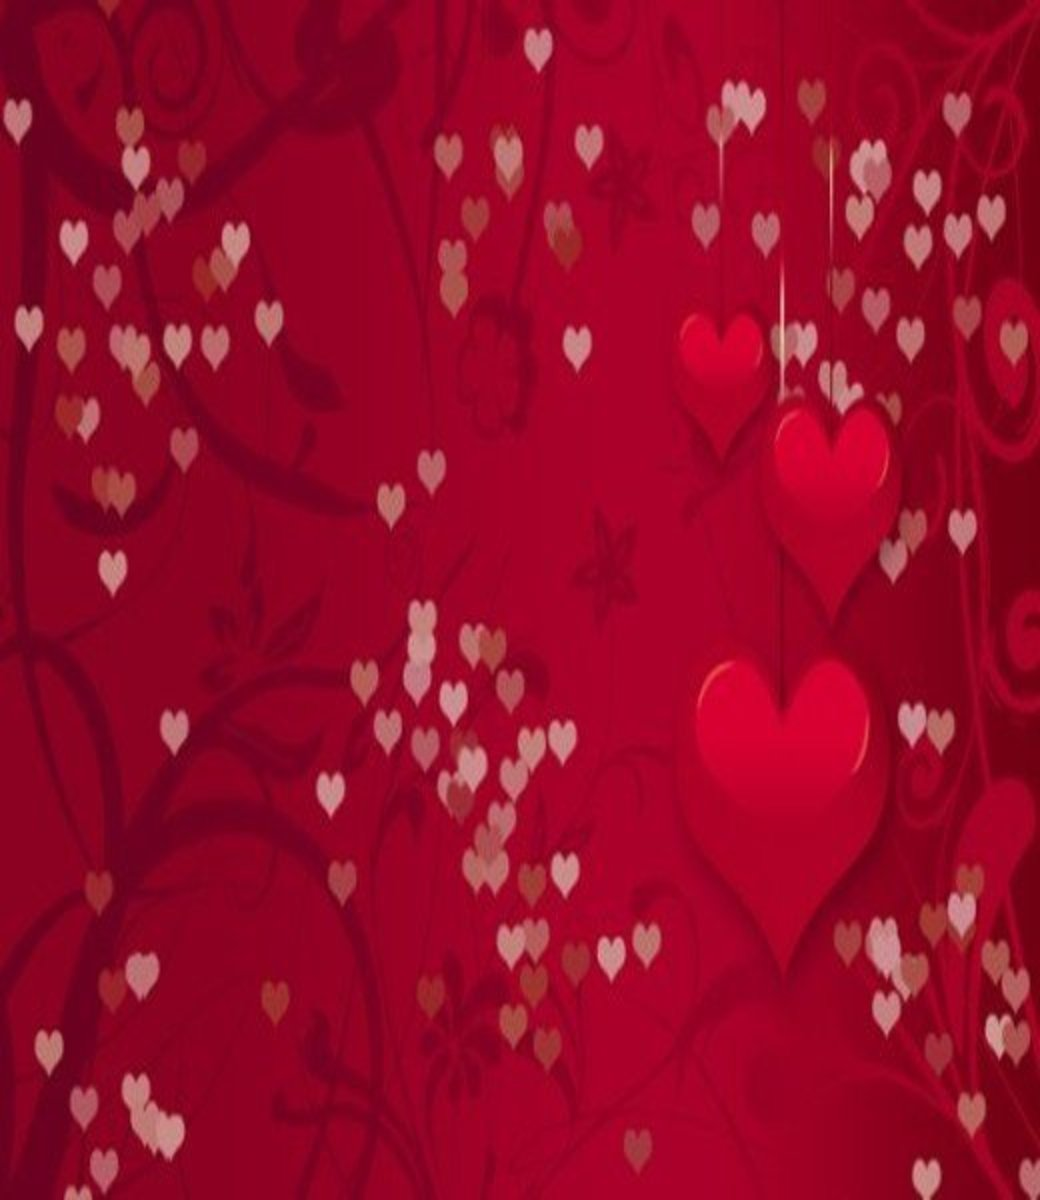 Floating Red Hearts Pictures